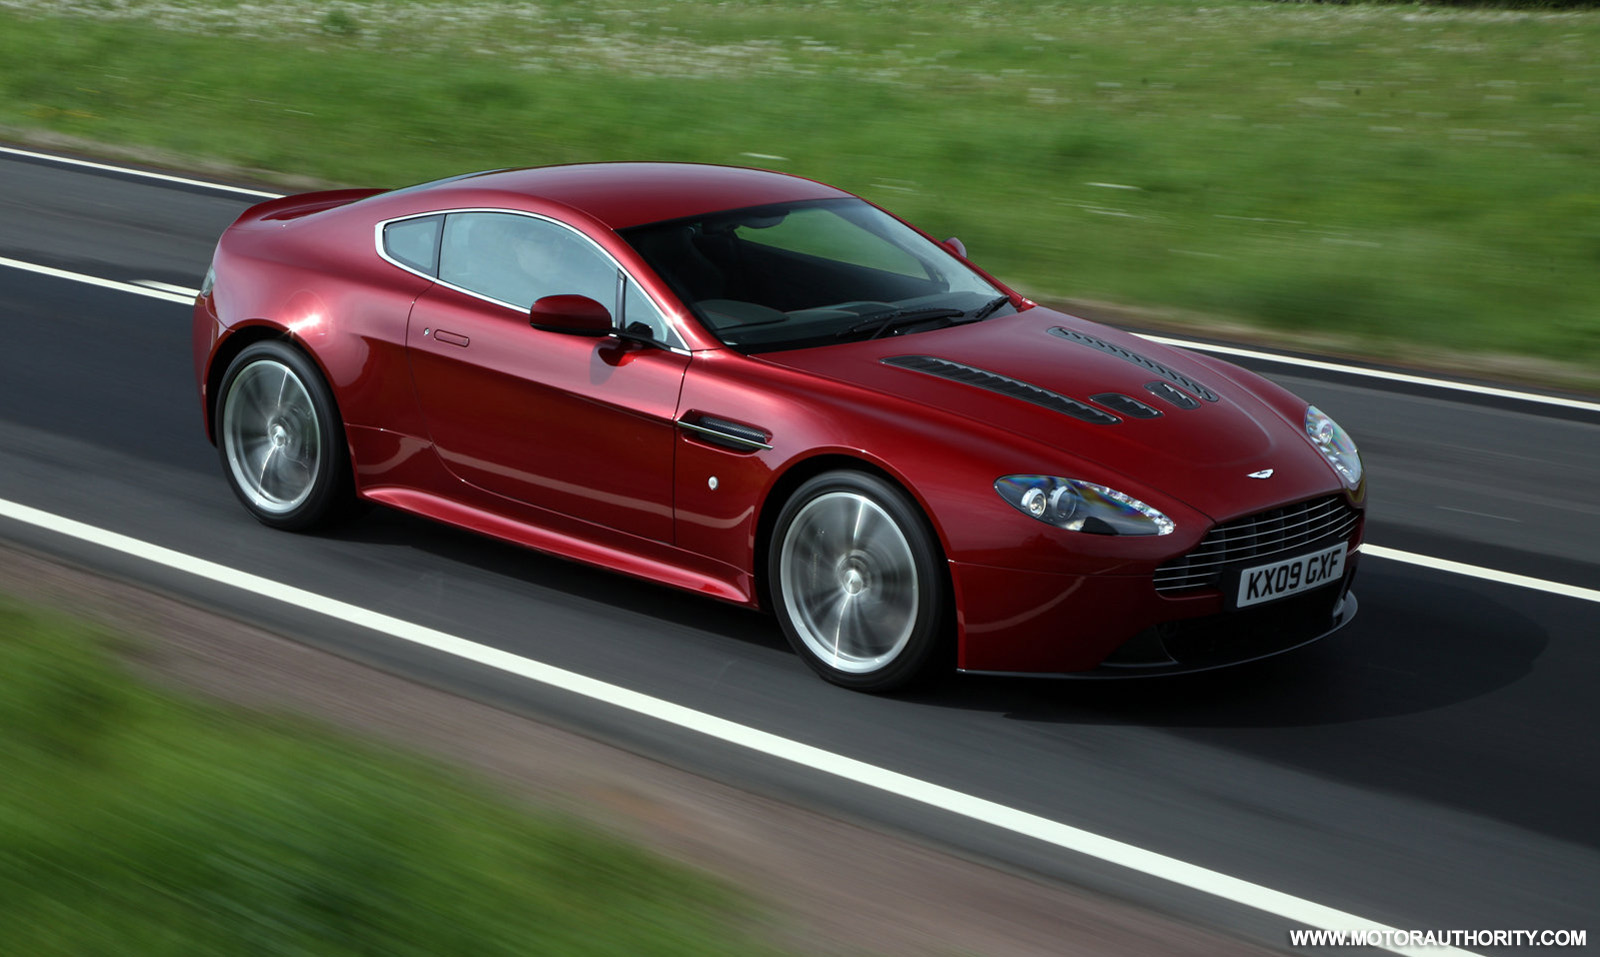 Aston Martin Officially Prices V12 Vantage From 179 995 Carbon Black From 194 995